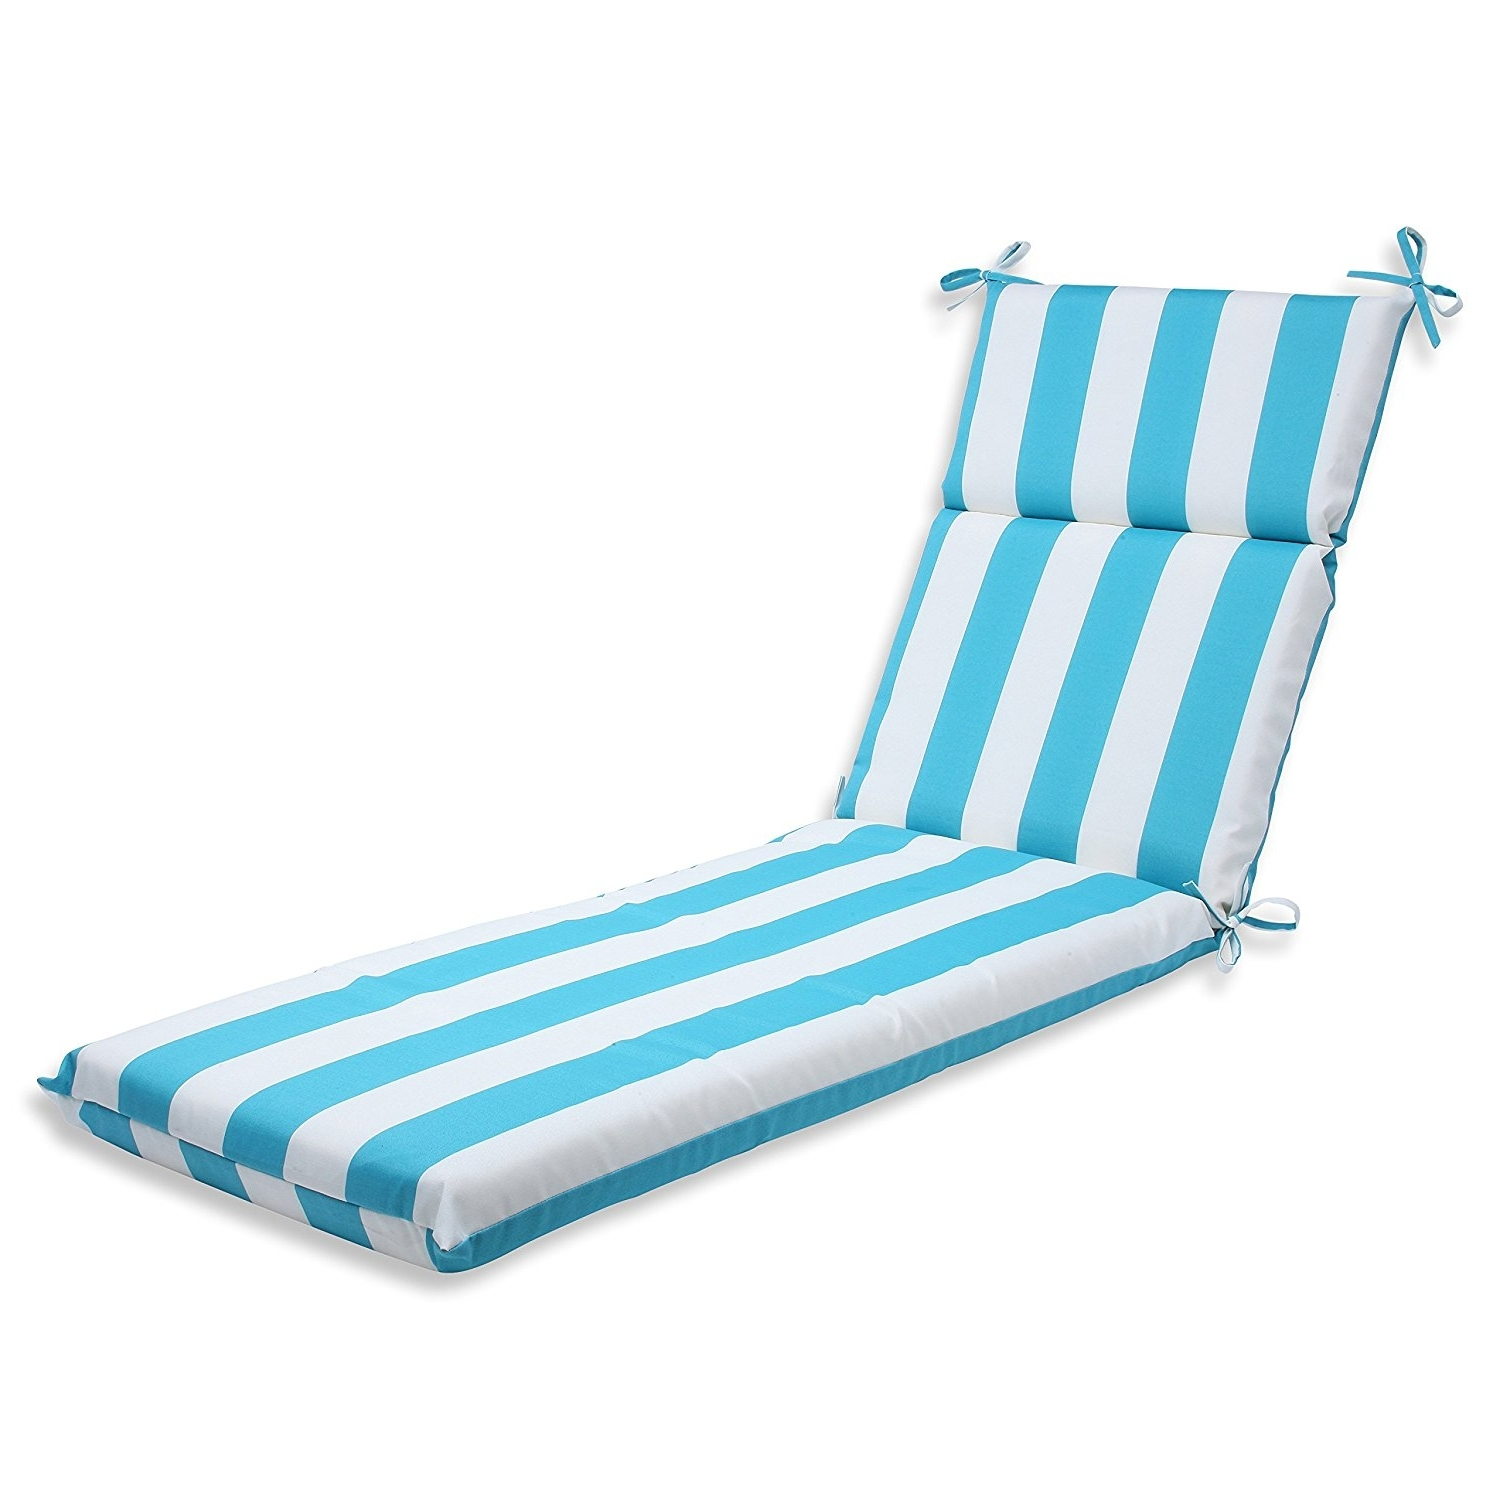 Chaise Lounge Outdoor Cushions Inside 2017 Amazon: Pillow Perfect Outdoor Cabana Stripe Chaise Lounge (View 7 of 15)